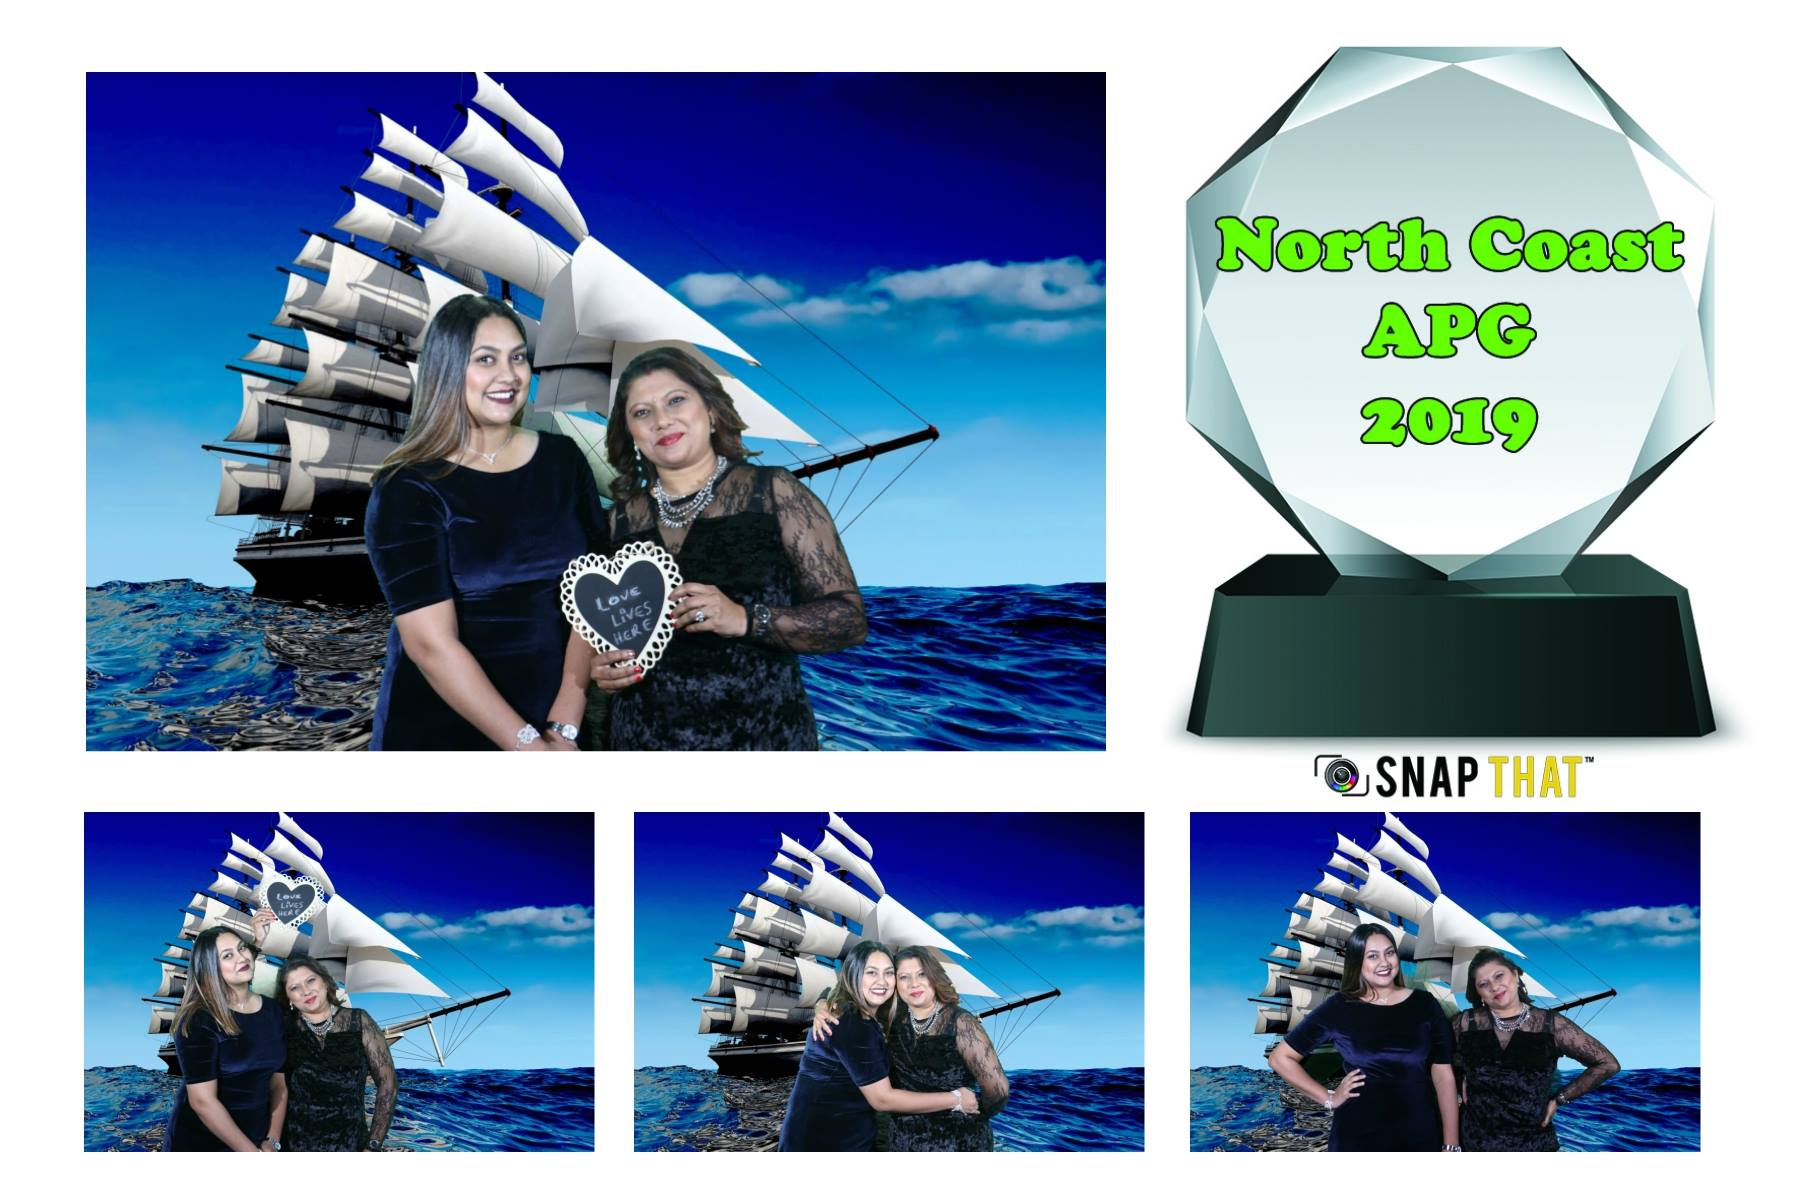 North Coast APG 2019 Photobooth